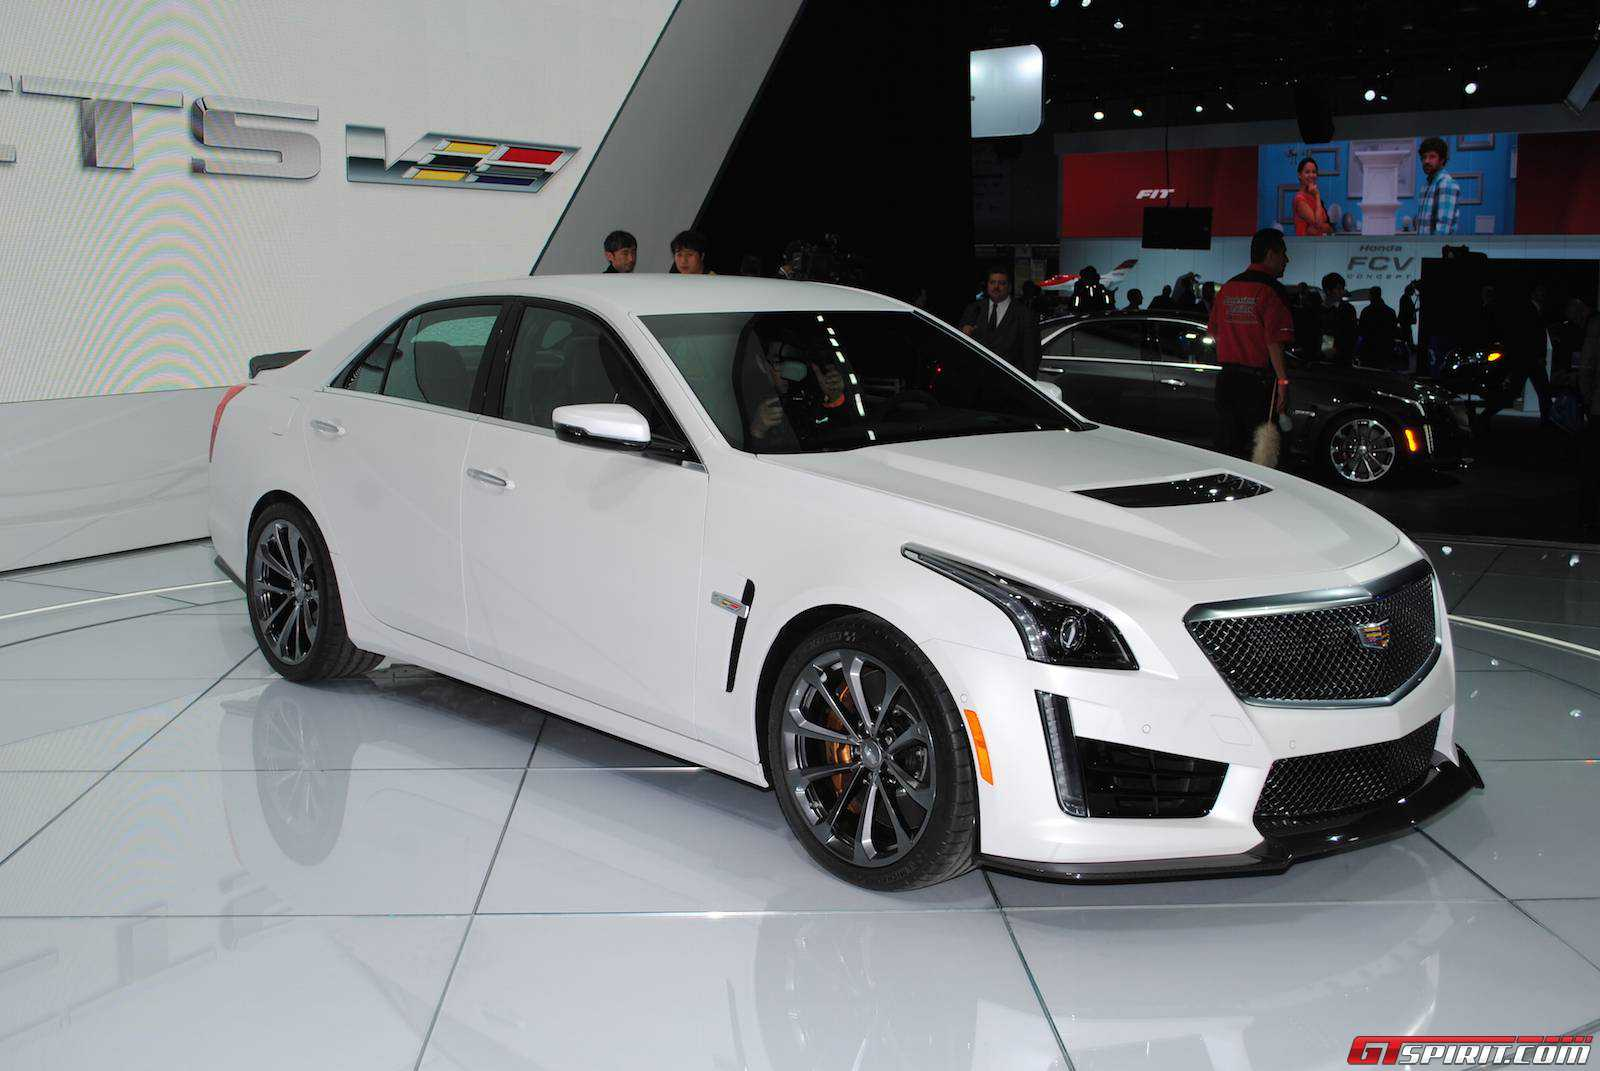 detroit 2015 cadillac cts v gtspirit. Black Bedroom Furniture Sets. Home Design Ideas